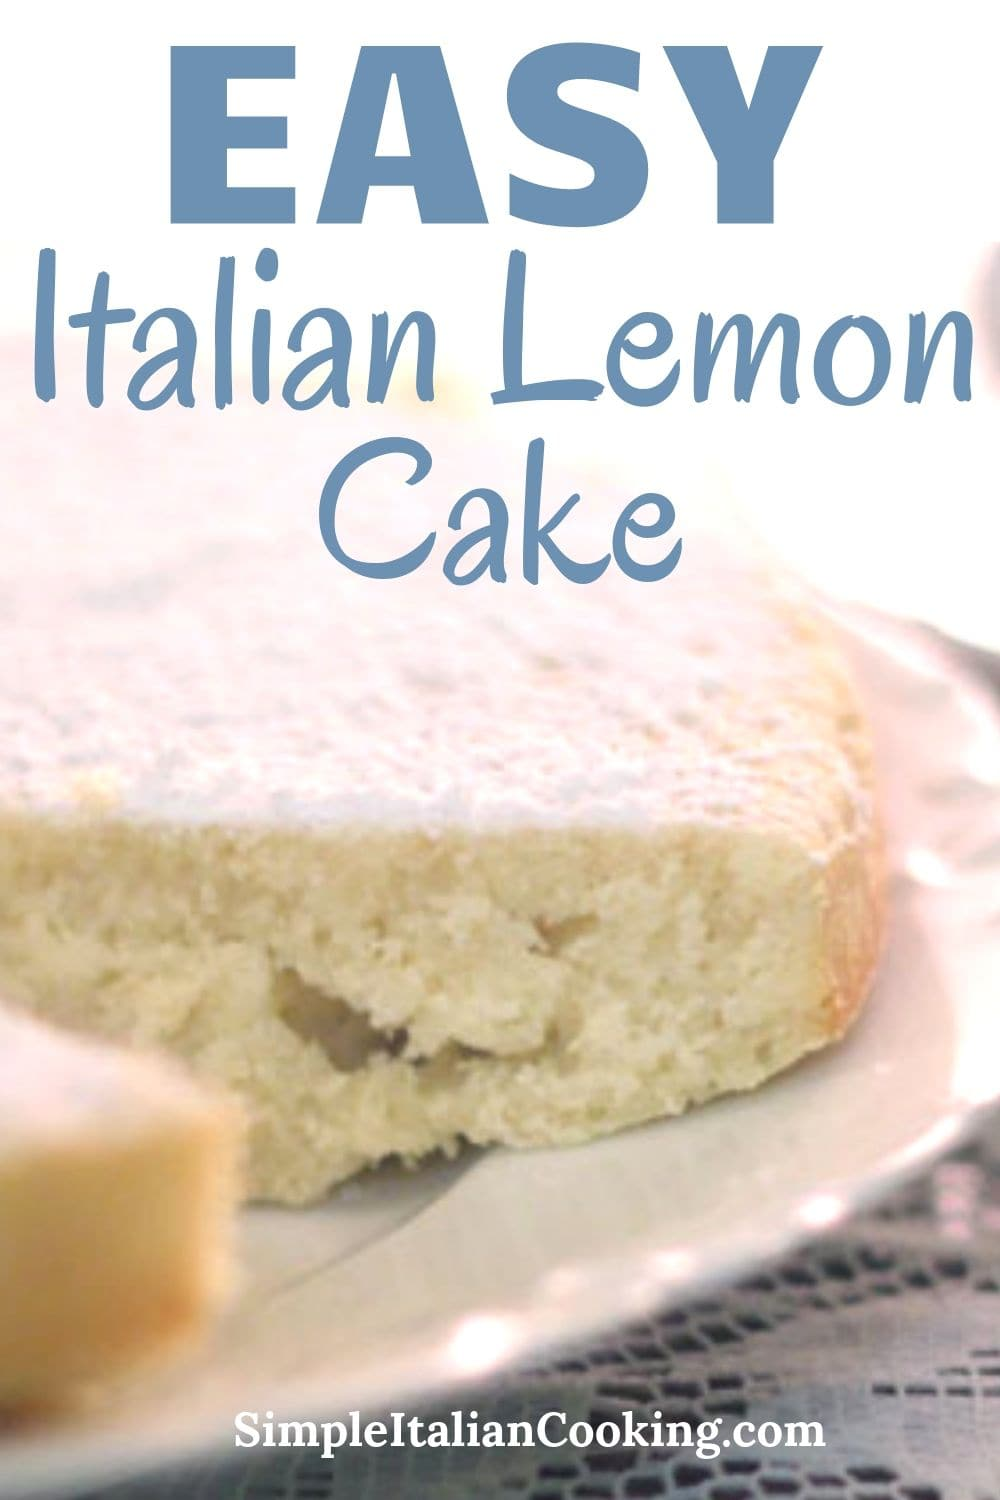 Awesome and amazing Italian lemon cake  is an easy and delicious classic Italian dessert recipe.  Perfect for holidays or get-togethers.   #Italianlemoncake #Italianlemoncakerecipe #ItalianlemoncakeItaly #italiandesserts #italiancake